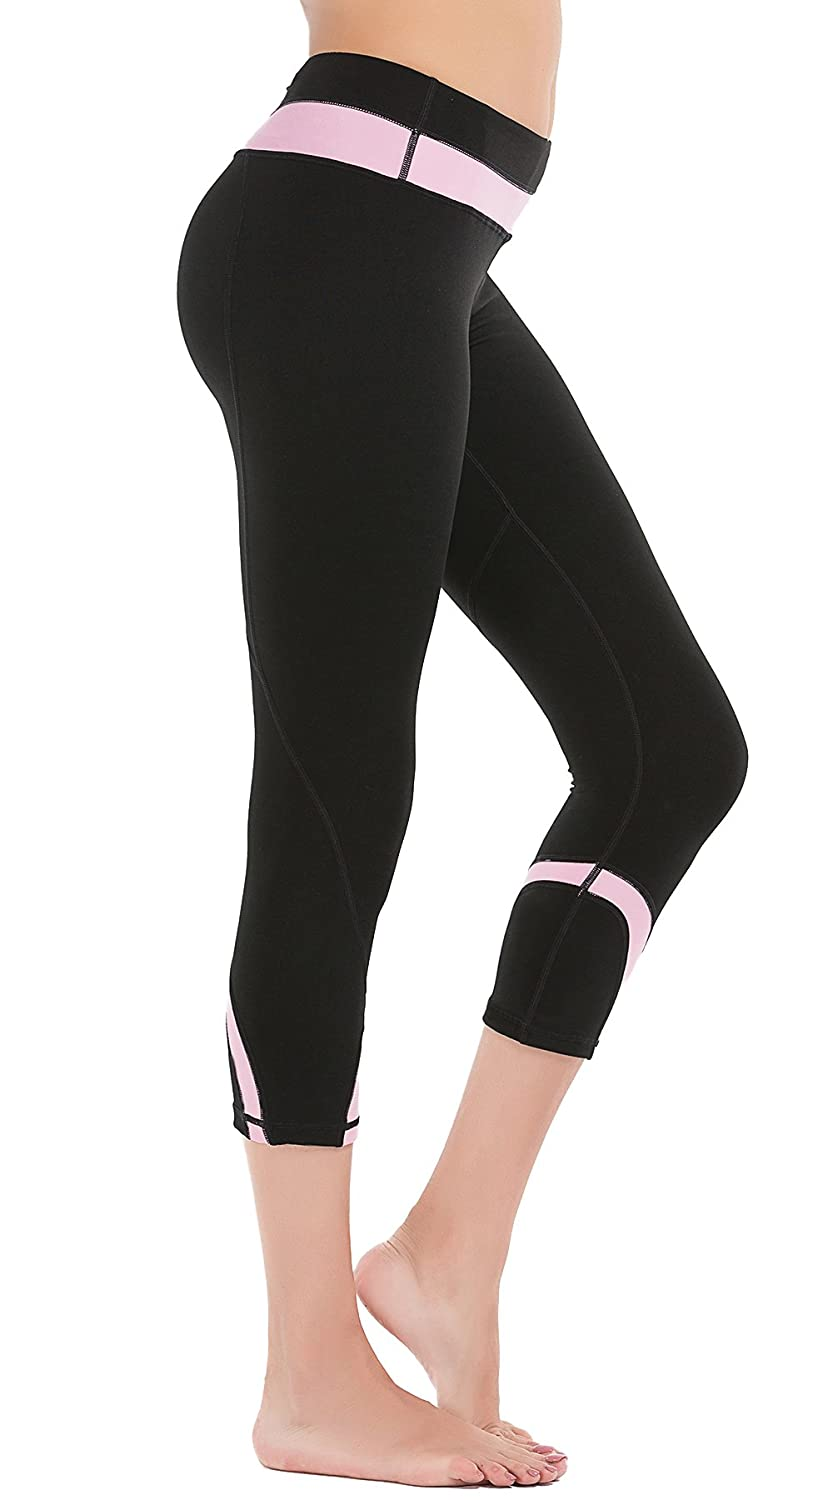 0211238a605724 DeepTwist Womens Yoga Pants Stirrup Leggings Power Stretch Gym Running  Workout Tights: Amazon.co.uk: Clothing